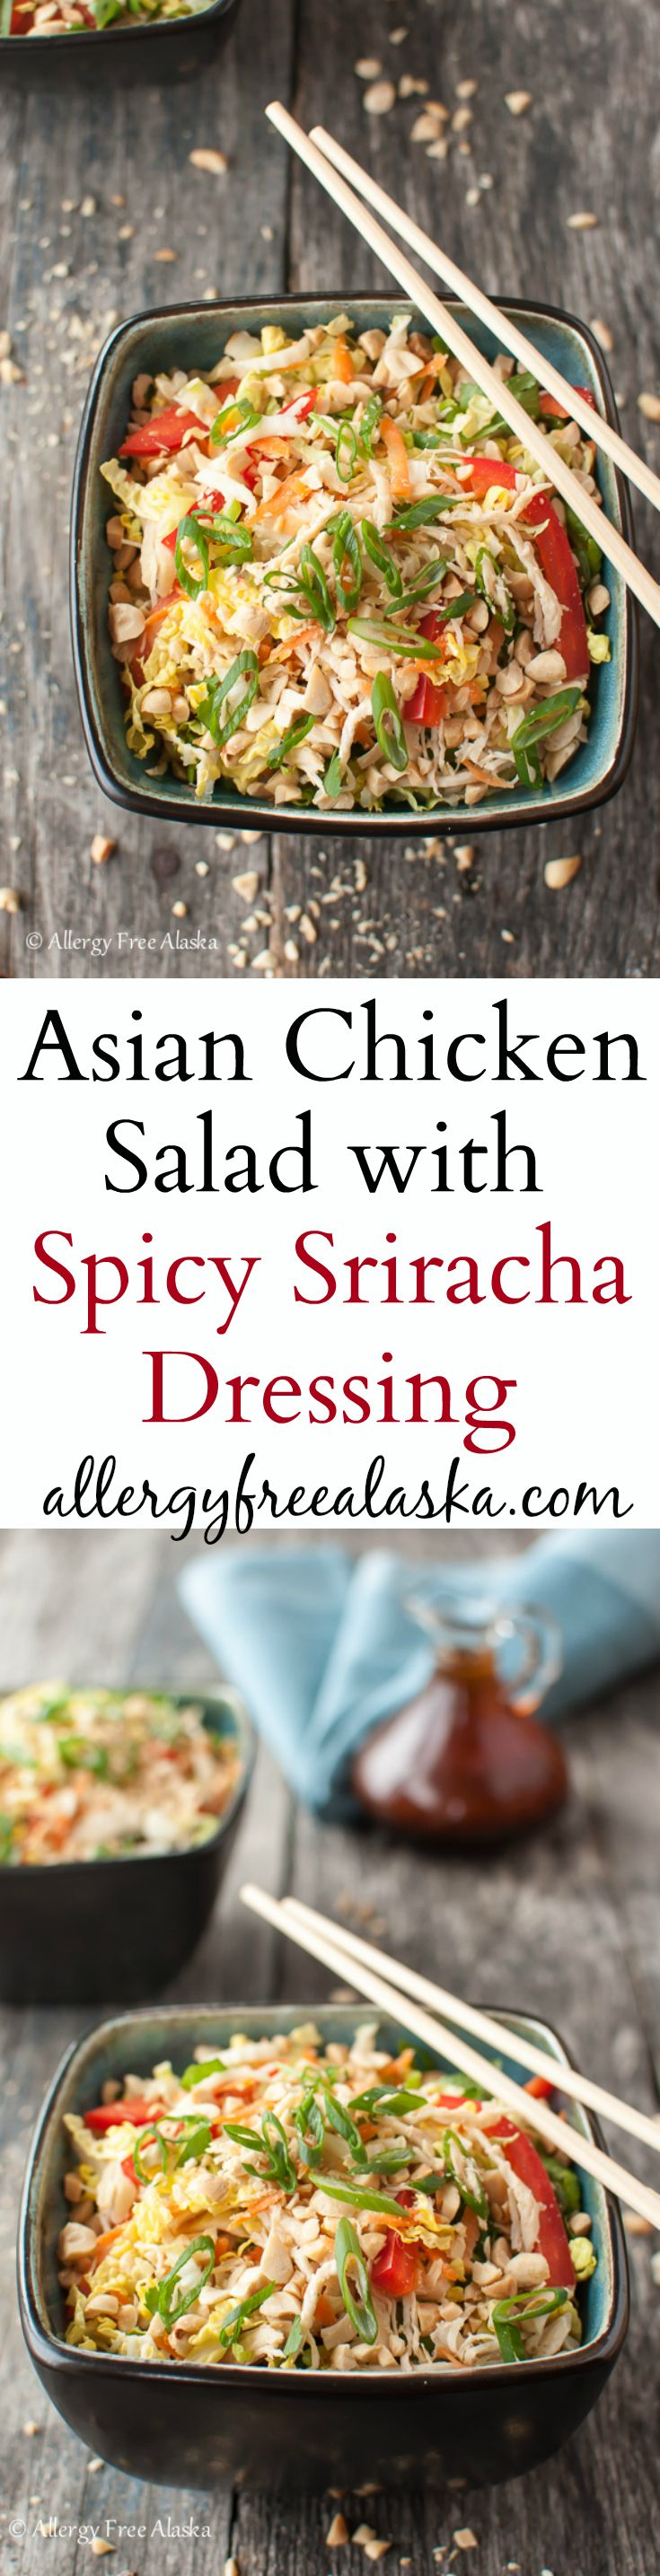 Recipe for Asian Chicken Salad with Spicy Sriracha Dressing from Allergy Free Alaska